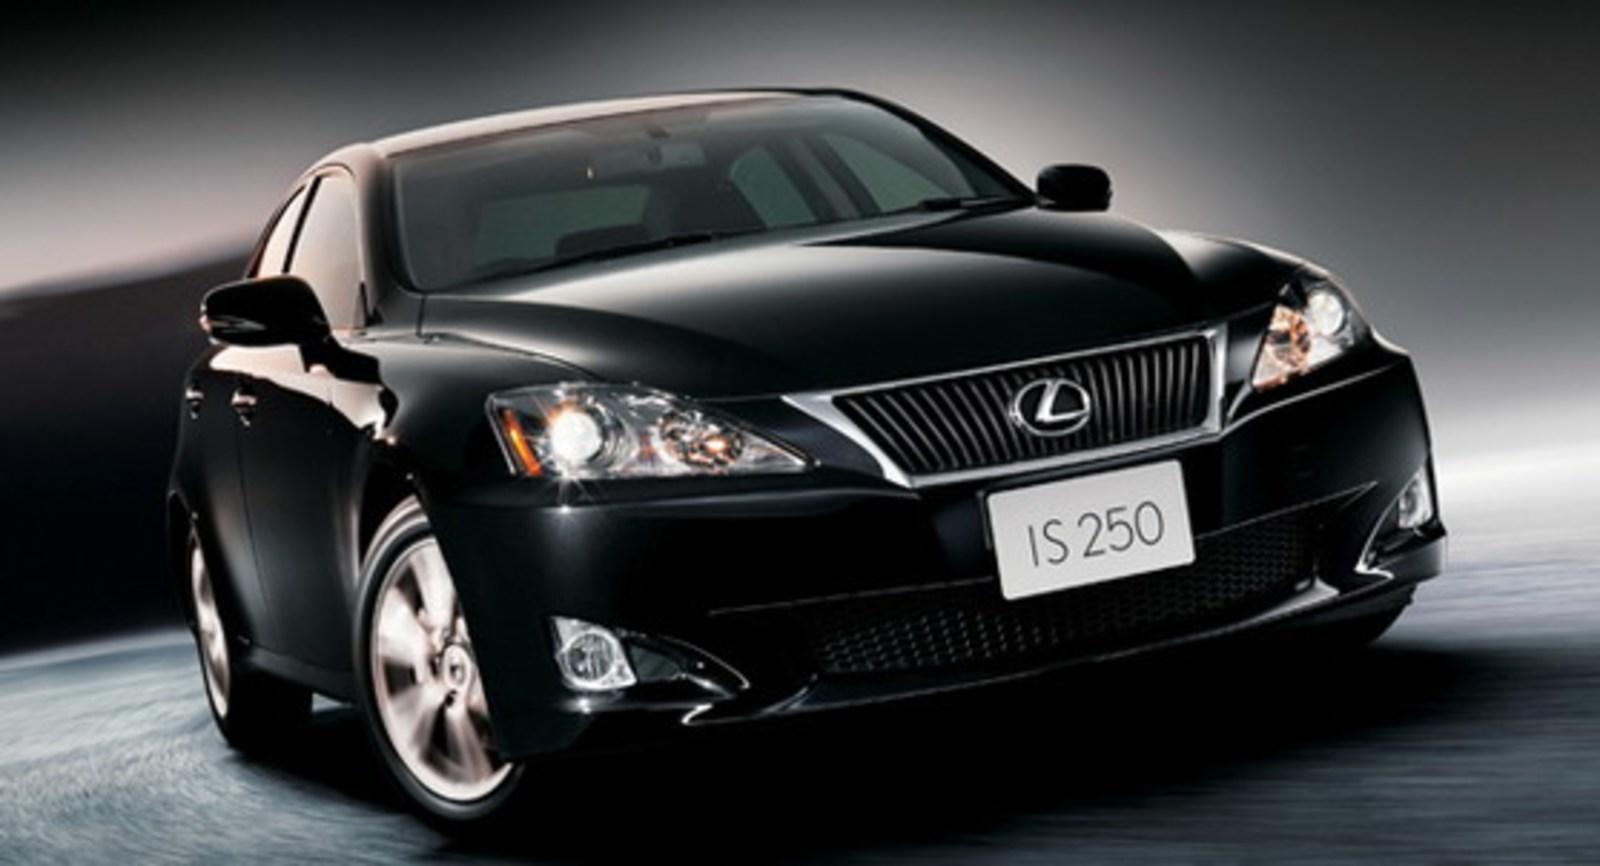 2010 lexus is250 x edition review gallery top speed. Black Bedroom Furniture Sets. Home Design Ideas